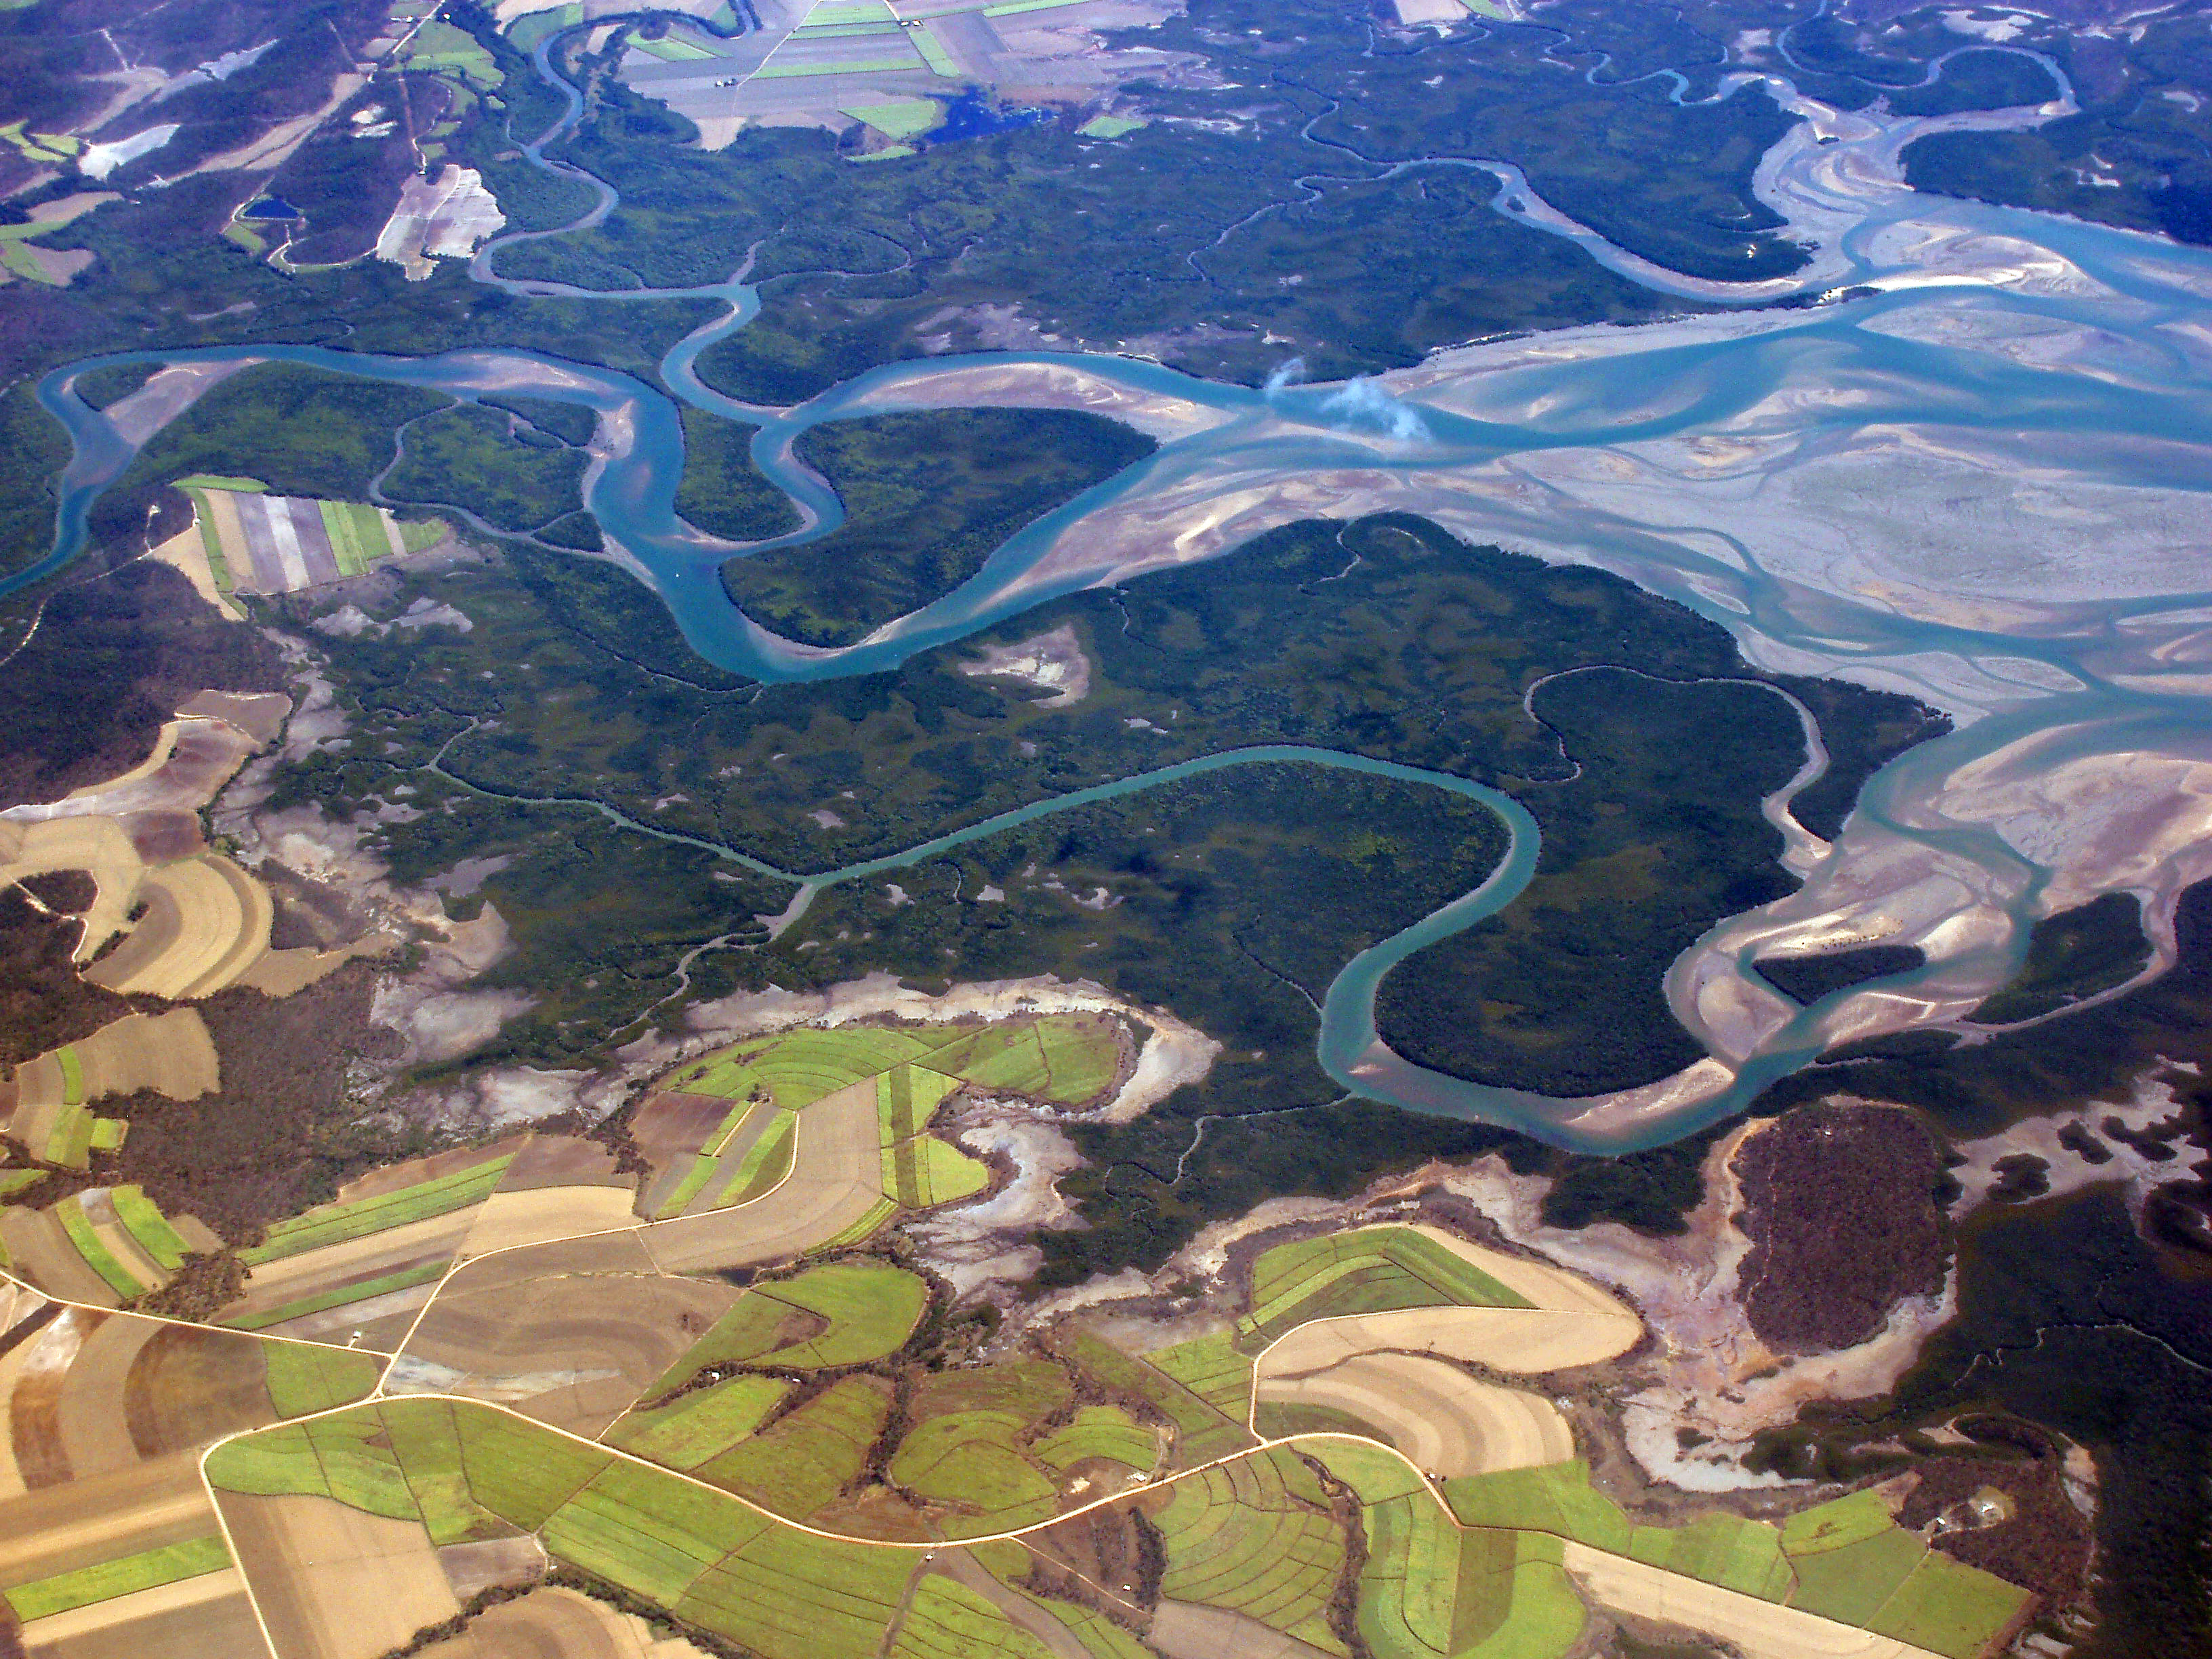 aerial view of a meandering river delta